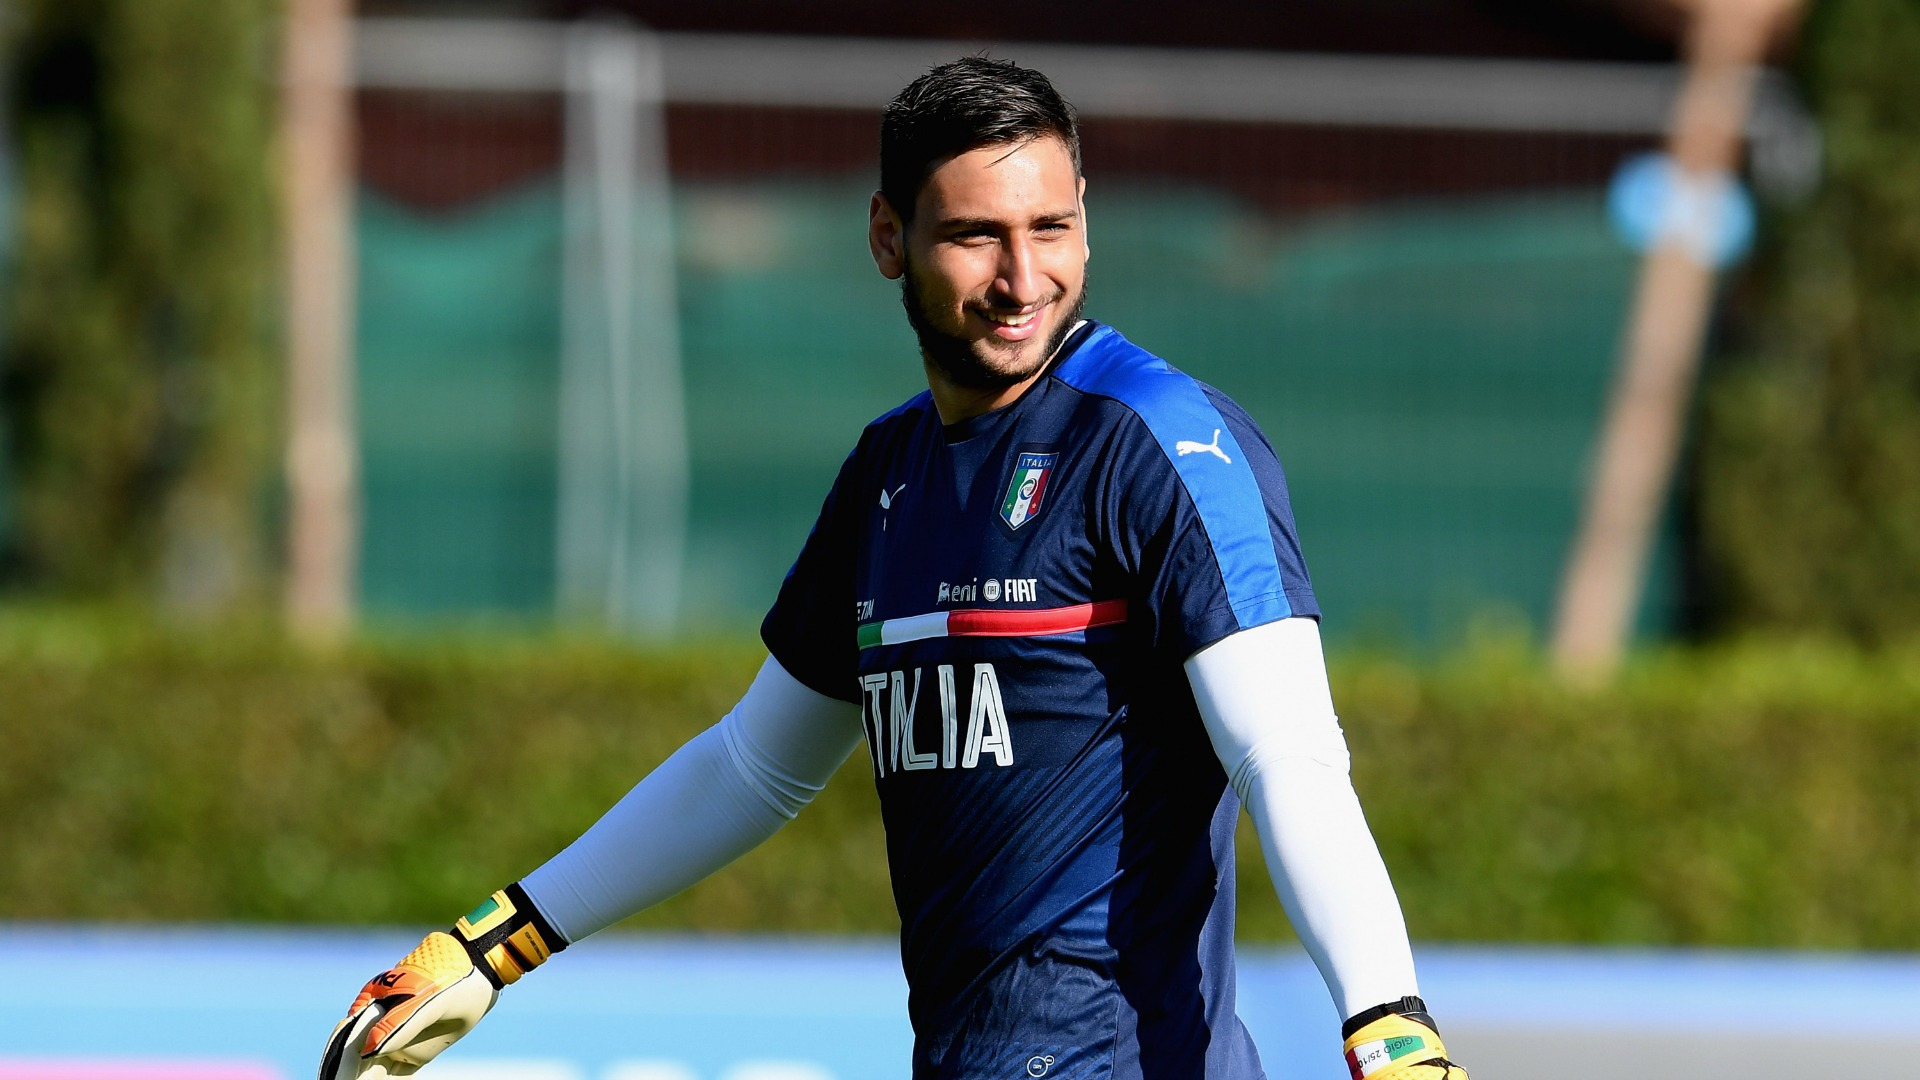 Italia Under 21, striscione e dollari finti a Donnarumma